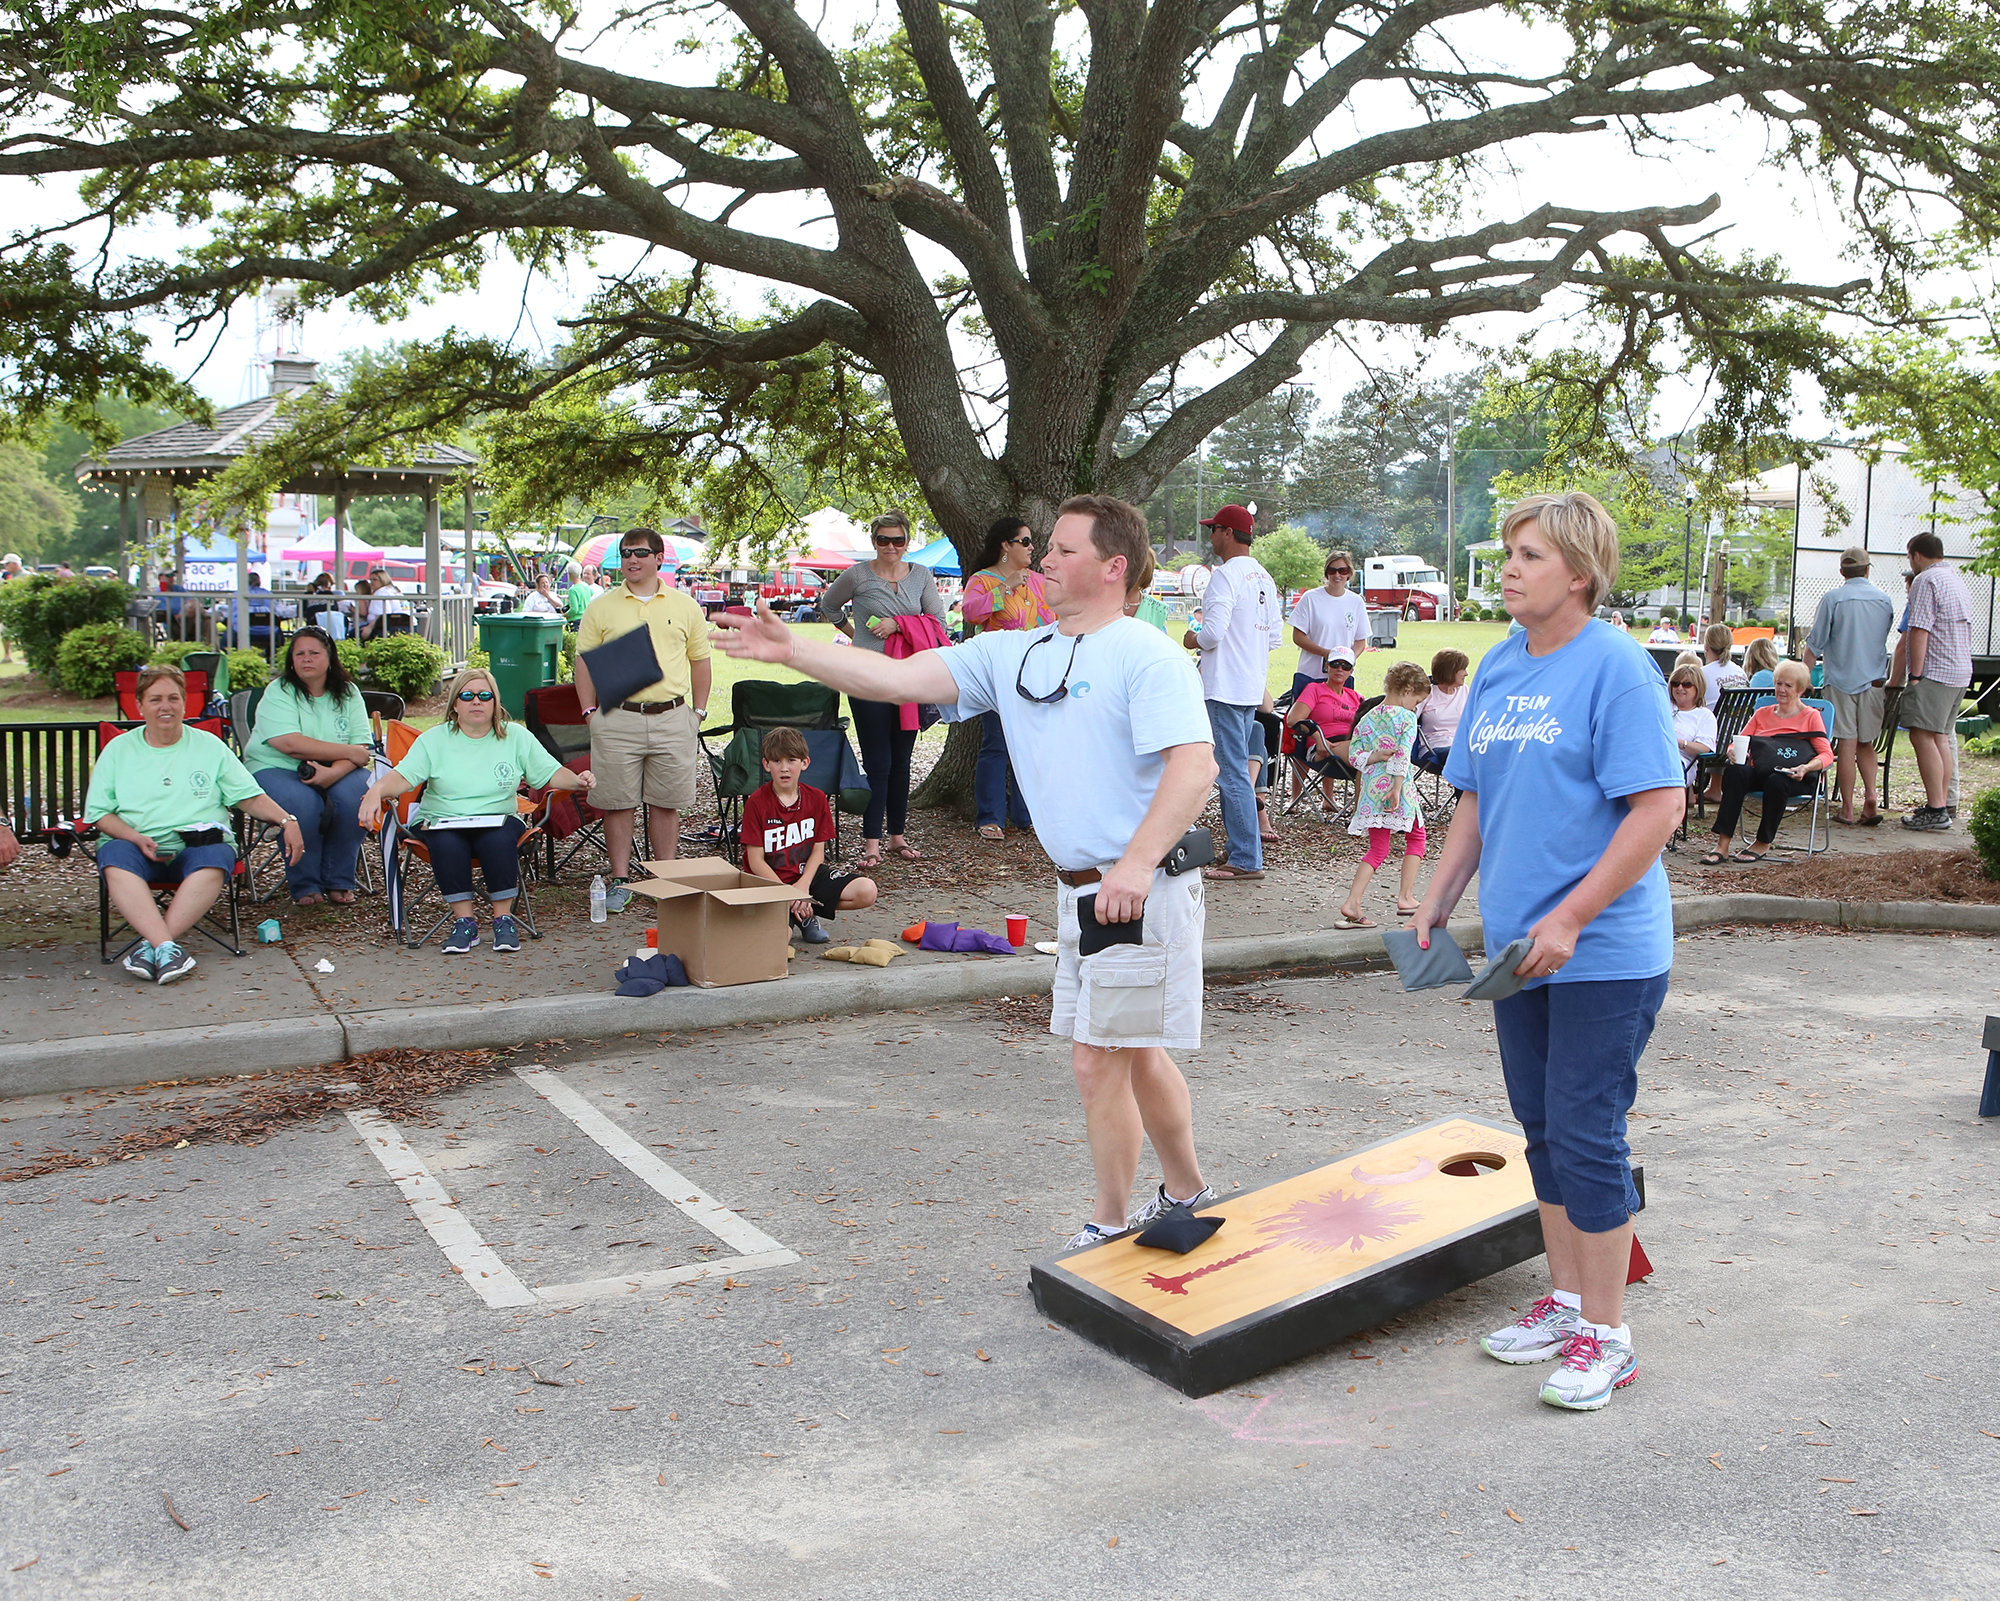 Ron Wingard and Katherine Turbeville play a game of corn hole as their friends and neighbors watch during the Puddin Swamp Festival on Saturday in Turbeville. (Keith Gedamke/The Item)